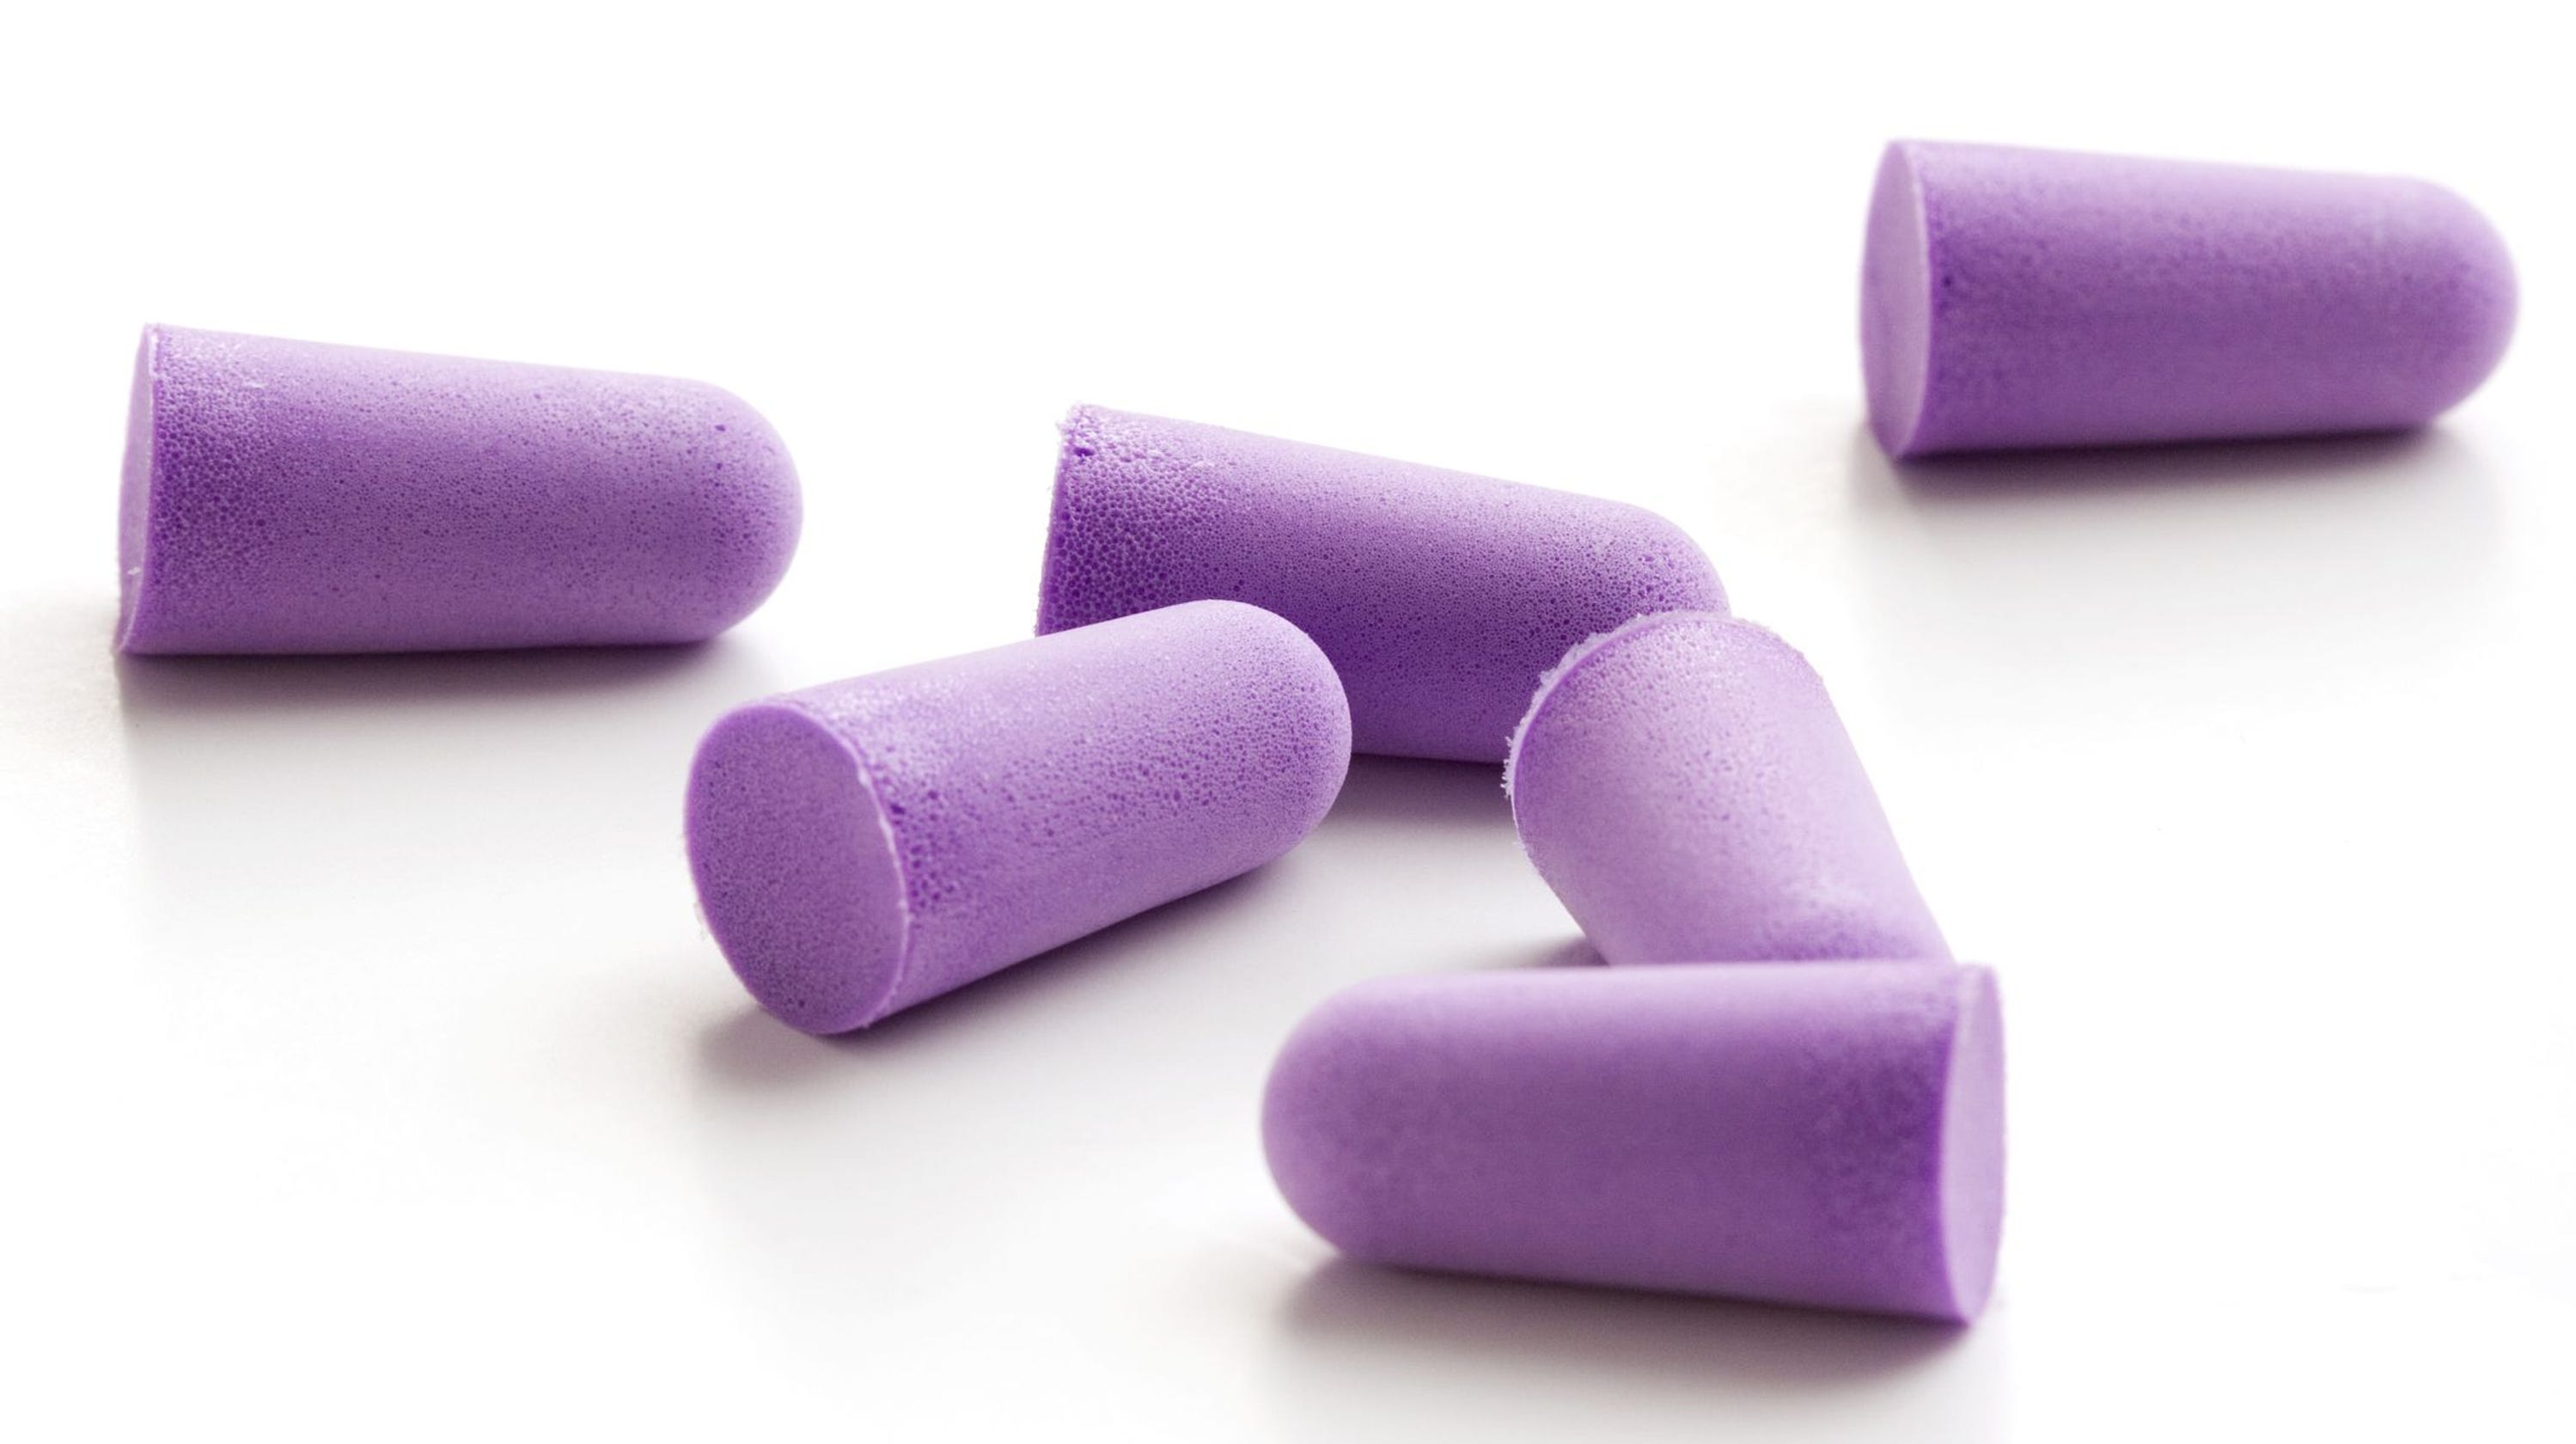 Stop apologizing for kids: Mom hands out 200 earplugs on plane fearing baby 'may cry'